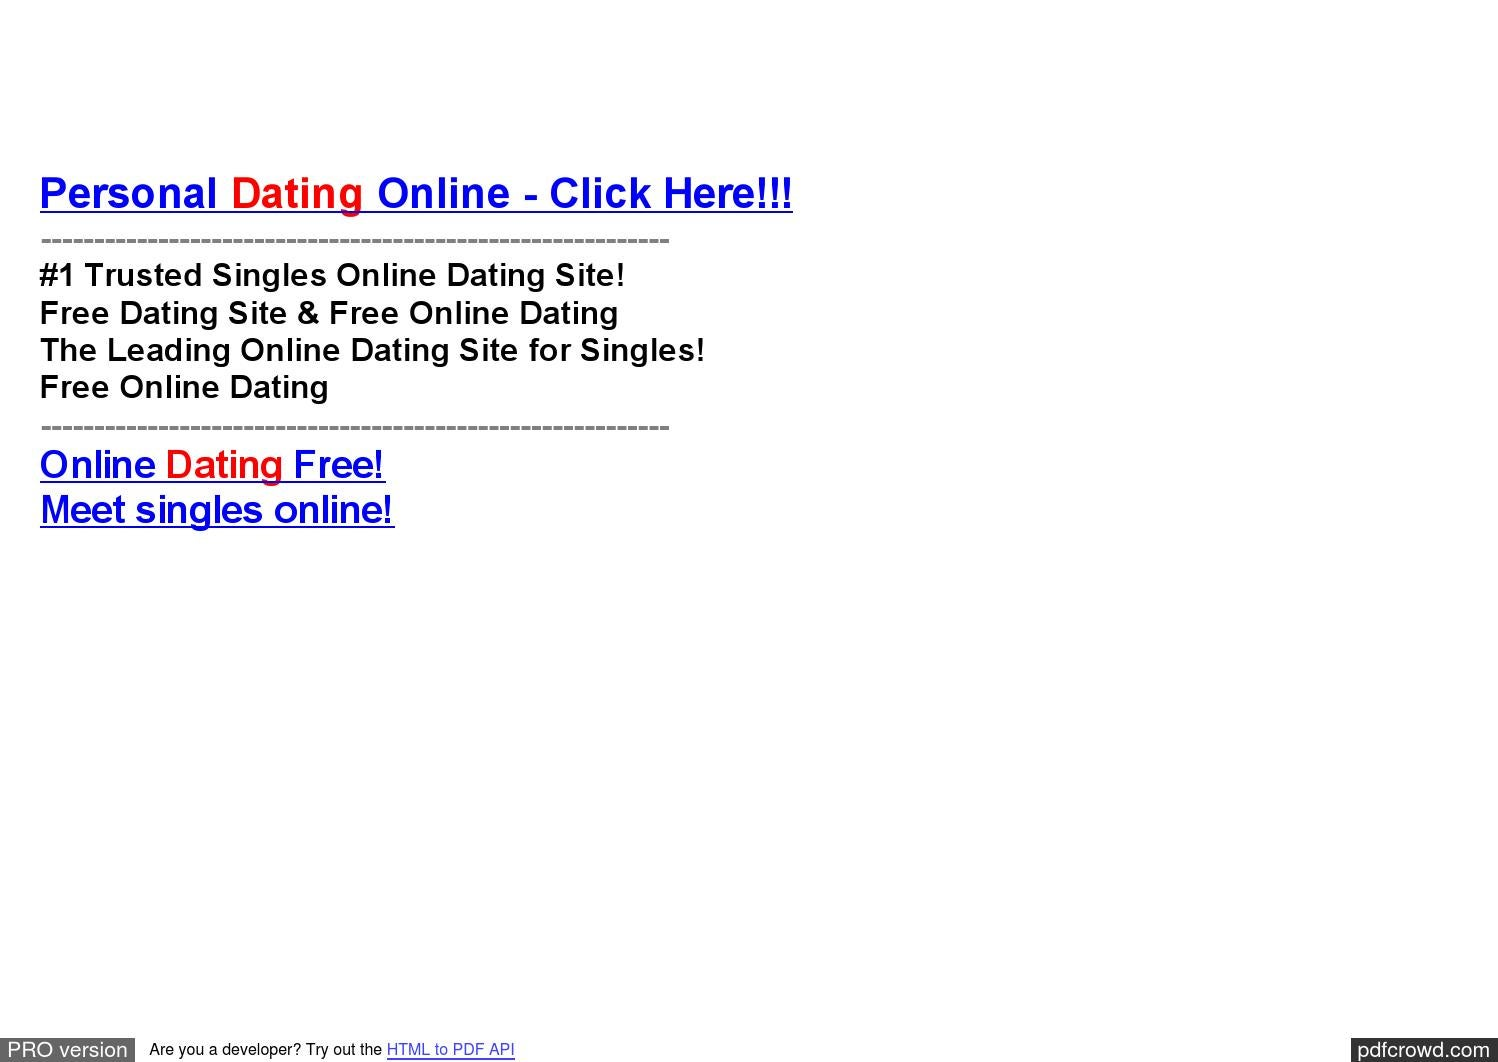 Ptx members dating site